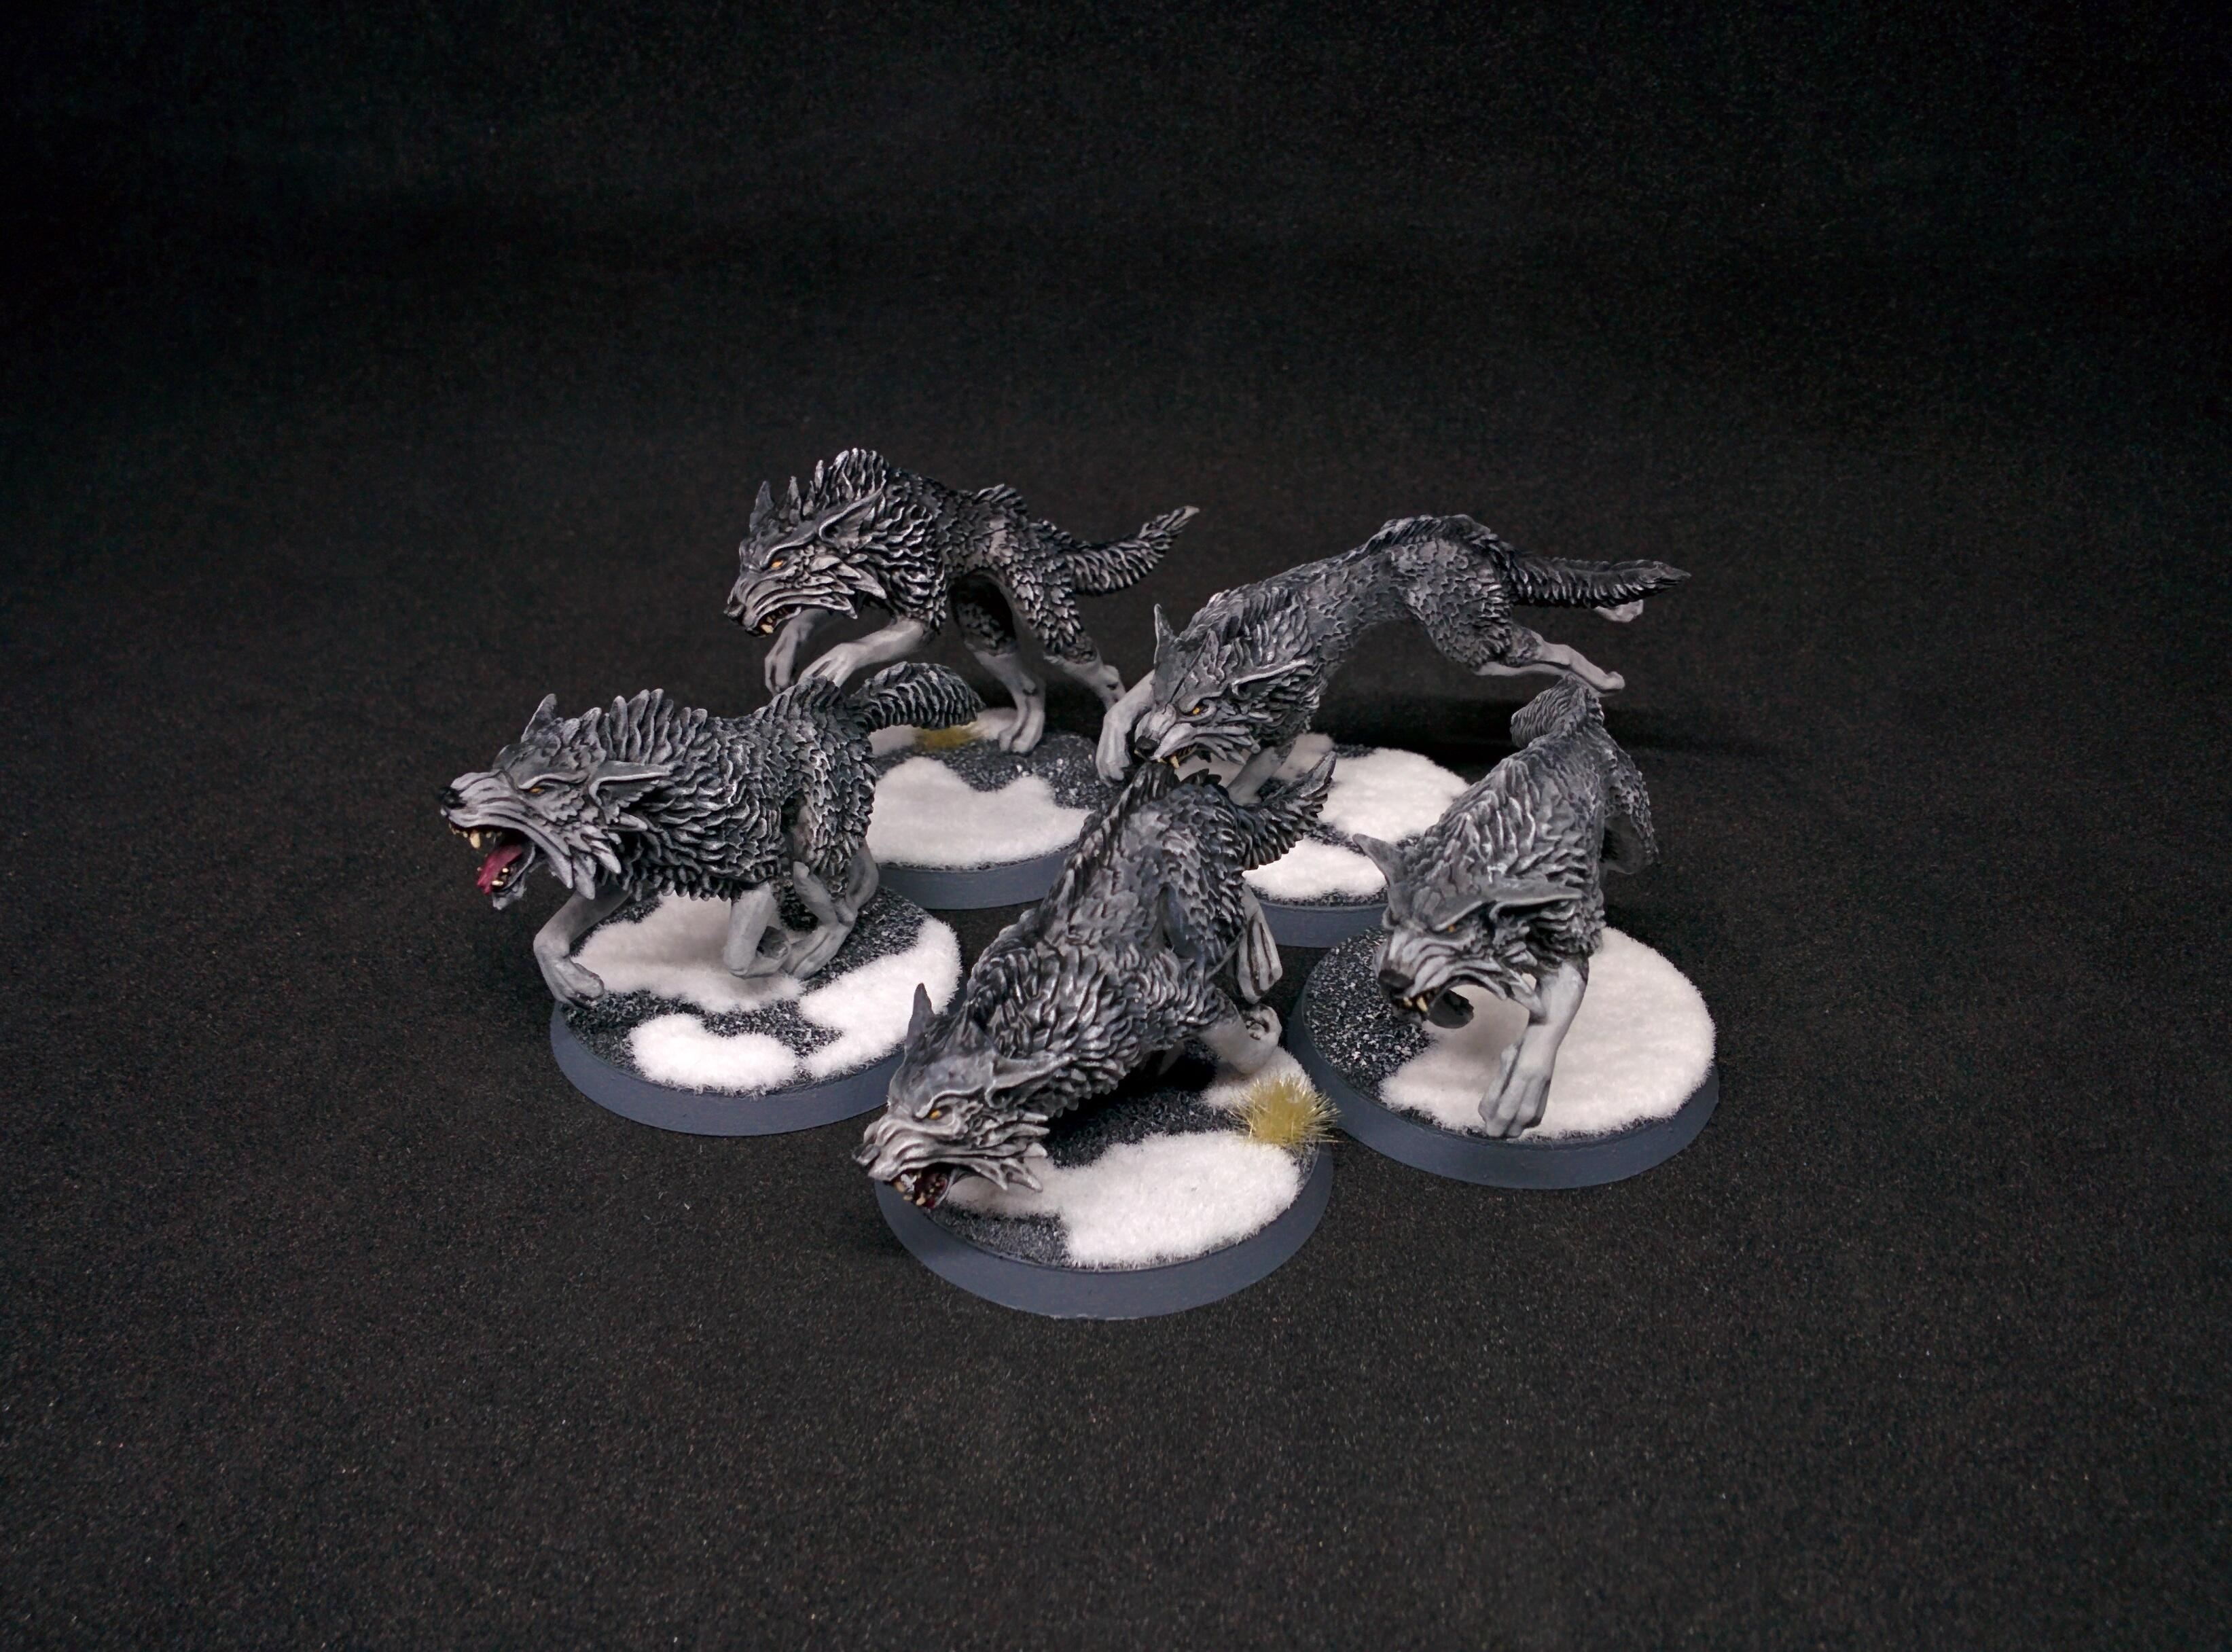 Fenris, Fenrisian Wolves, Snow, Space Wolves, Vlka Fenryka, Wolf, Wolfpack, Wolves